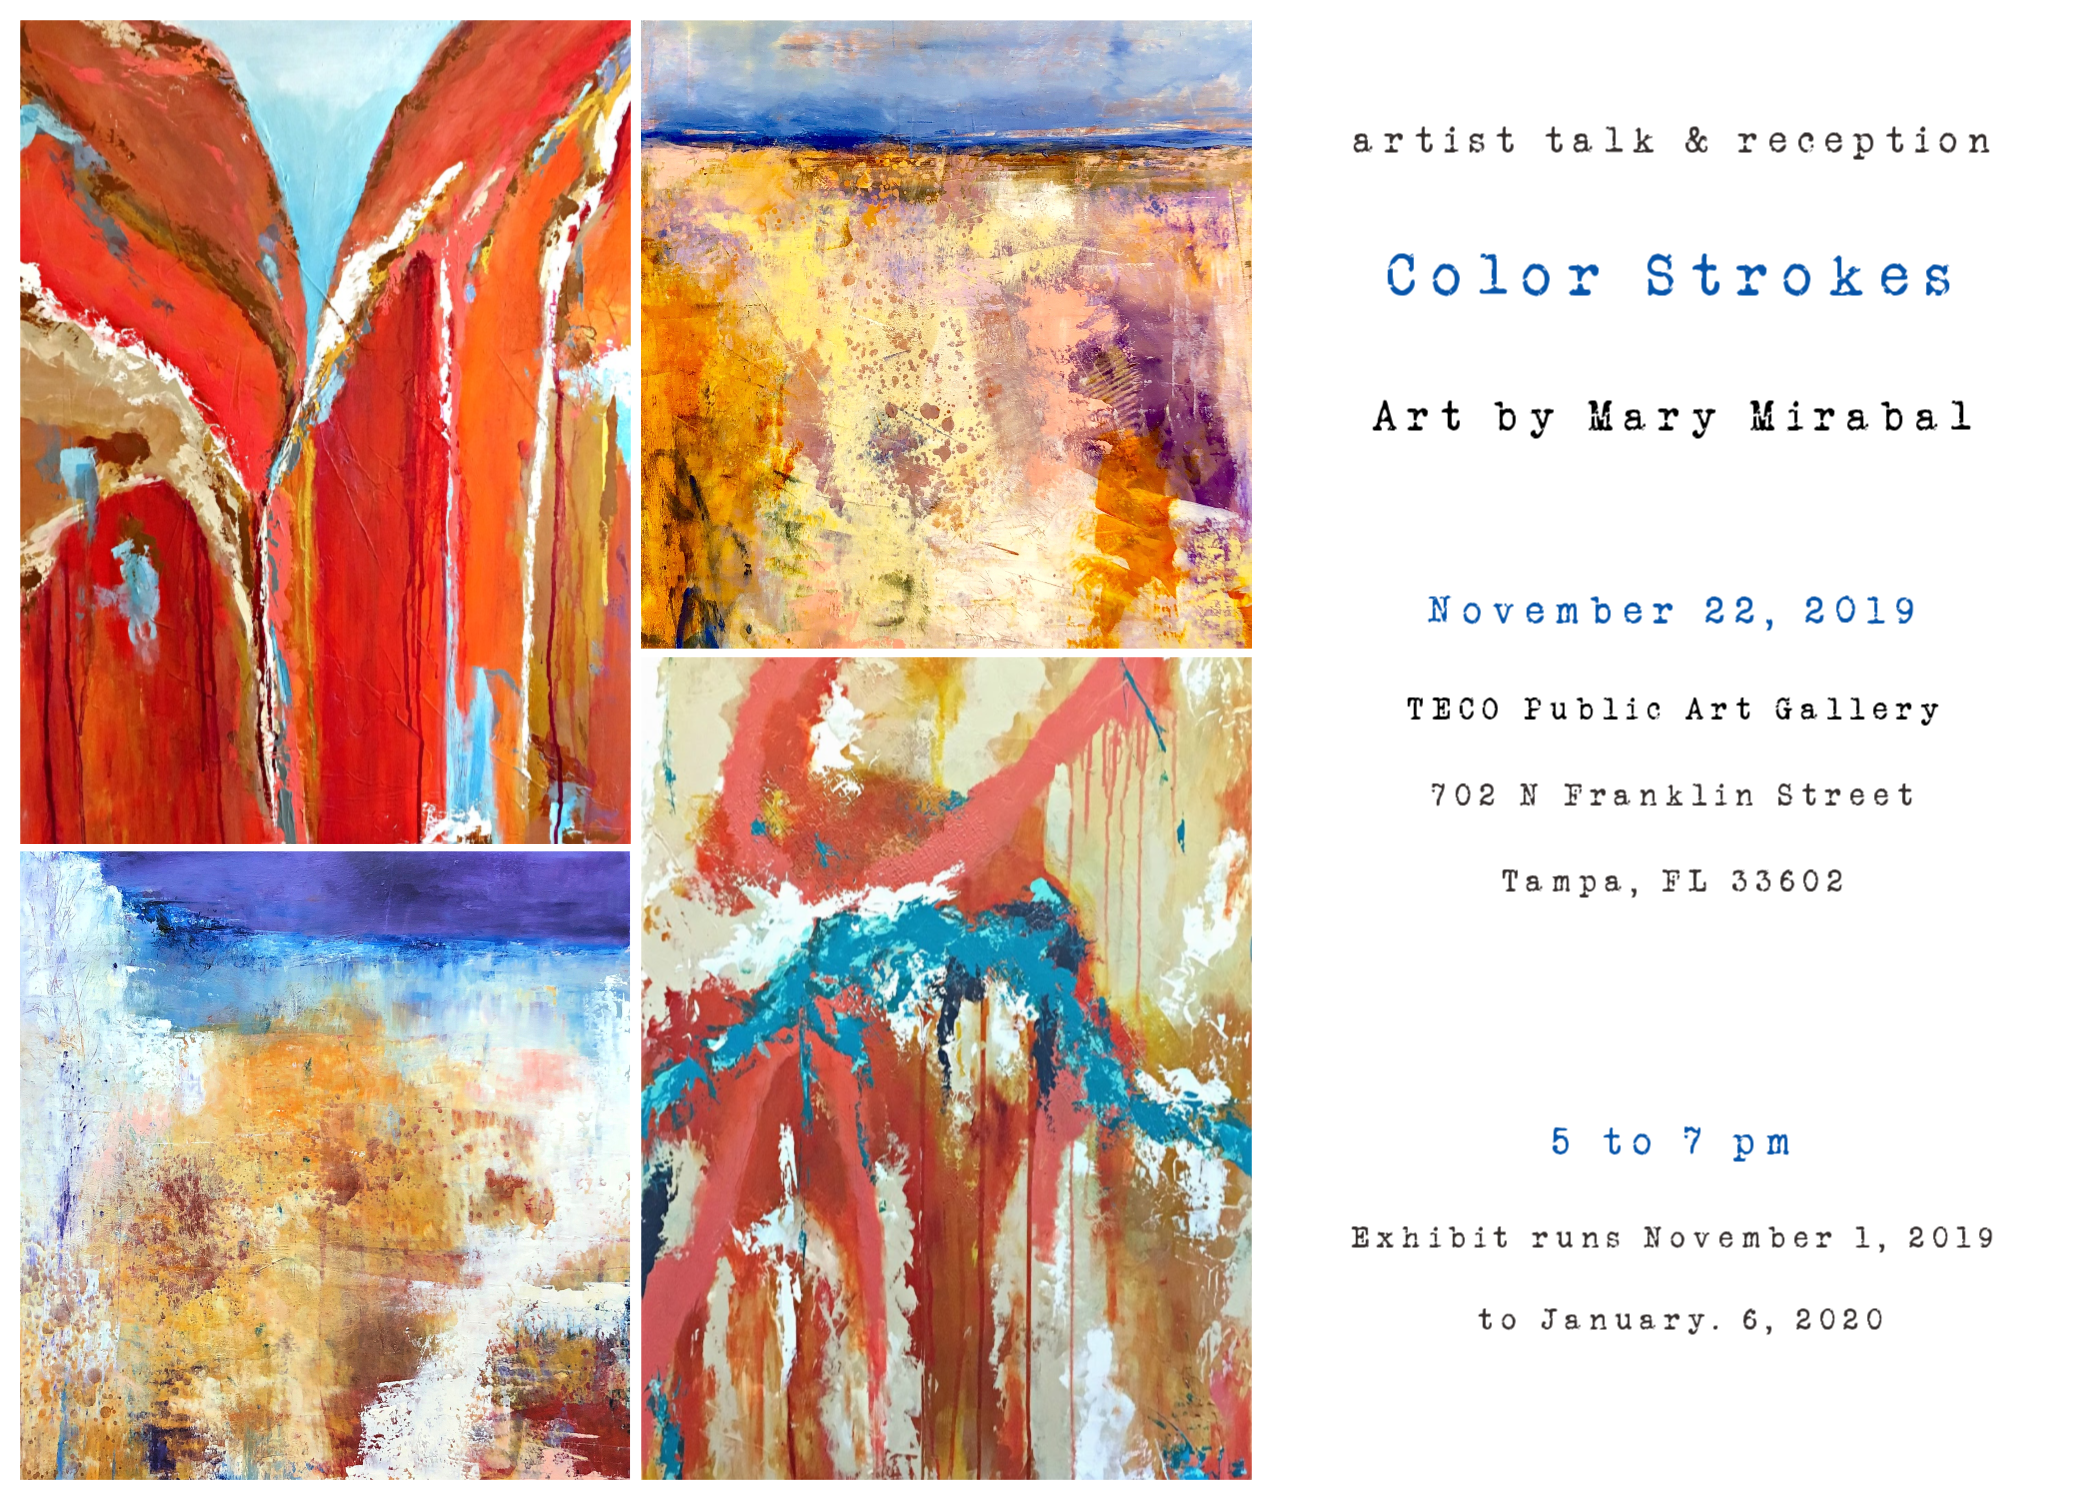 Color Strokes | Art by Mary Mirabal - Opening Reception: November 22,2019Award winning Tampa abstract artist Mary Mirabal will unveil a solo exhibit at the Sebring Museum of the Arts on Friday, November 22. The exhibit runs November 1, 2019 through January 6, 2019.TECO Public Art Gallery702 N. Franklin StreetTampa, FL 33602